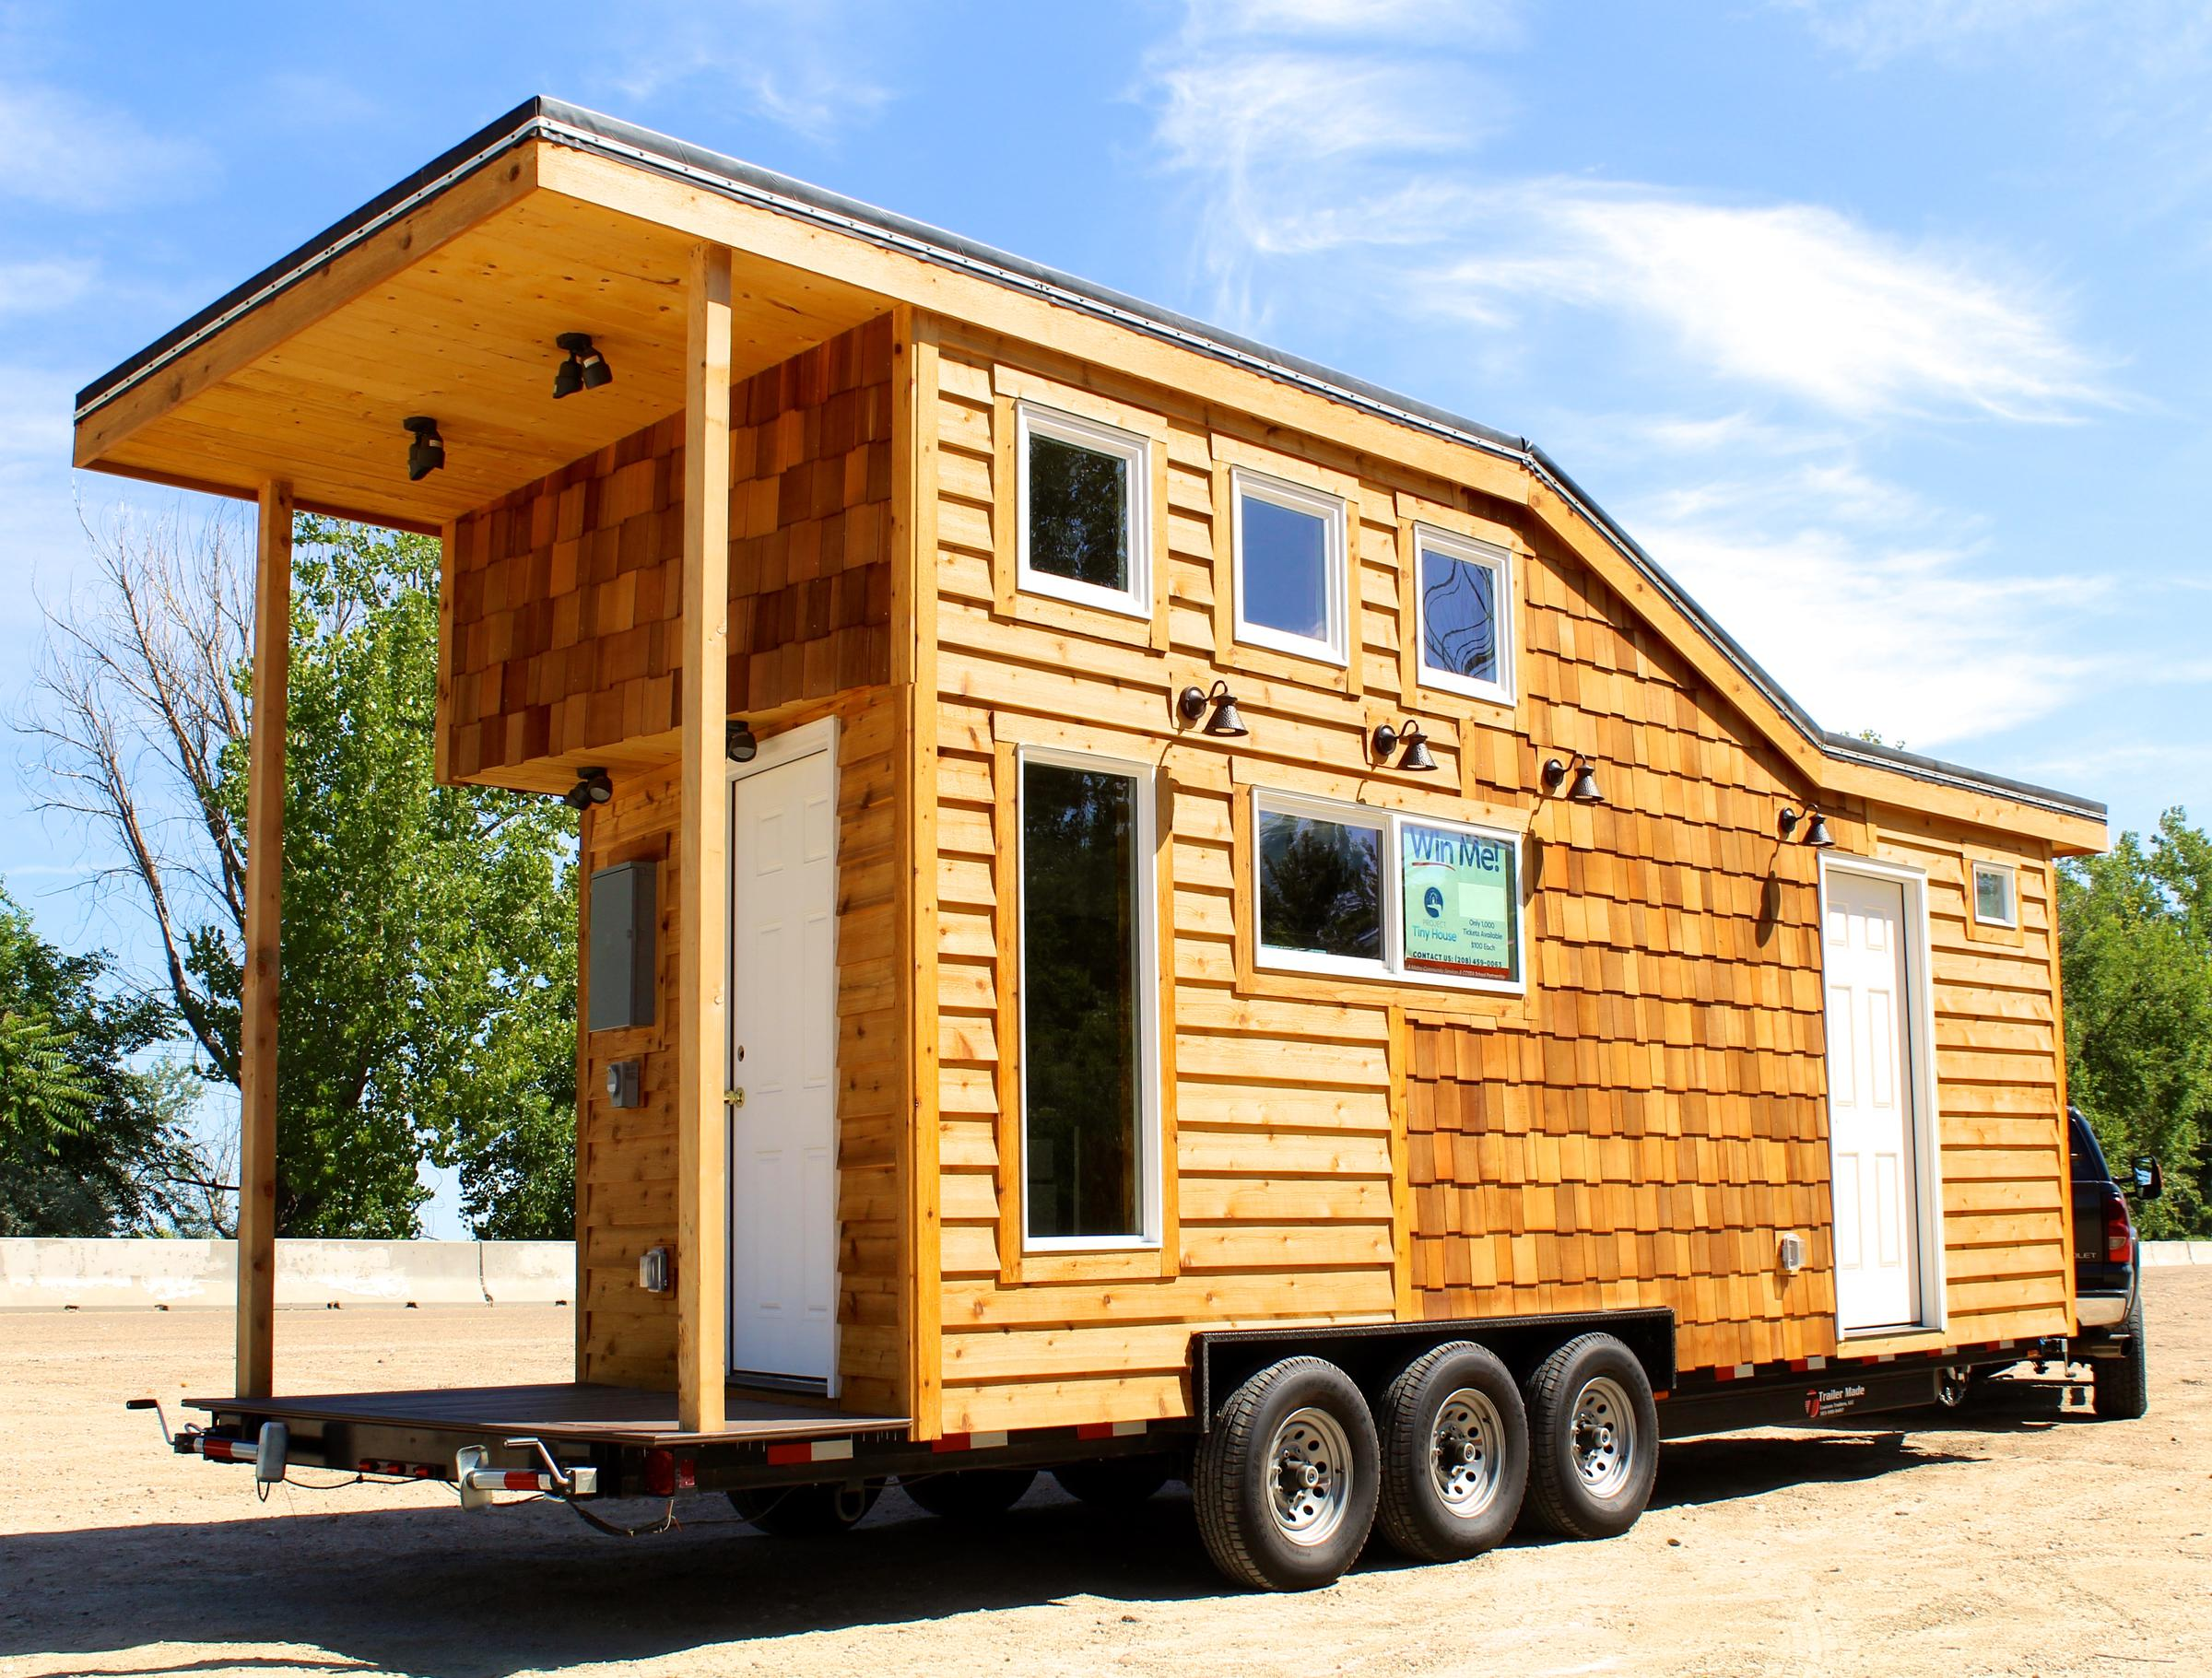 The Completed Tiny House